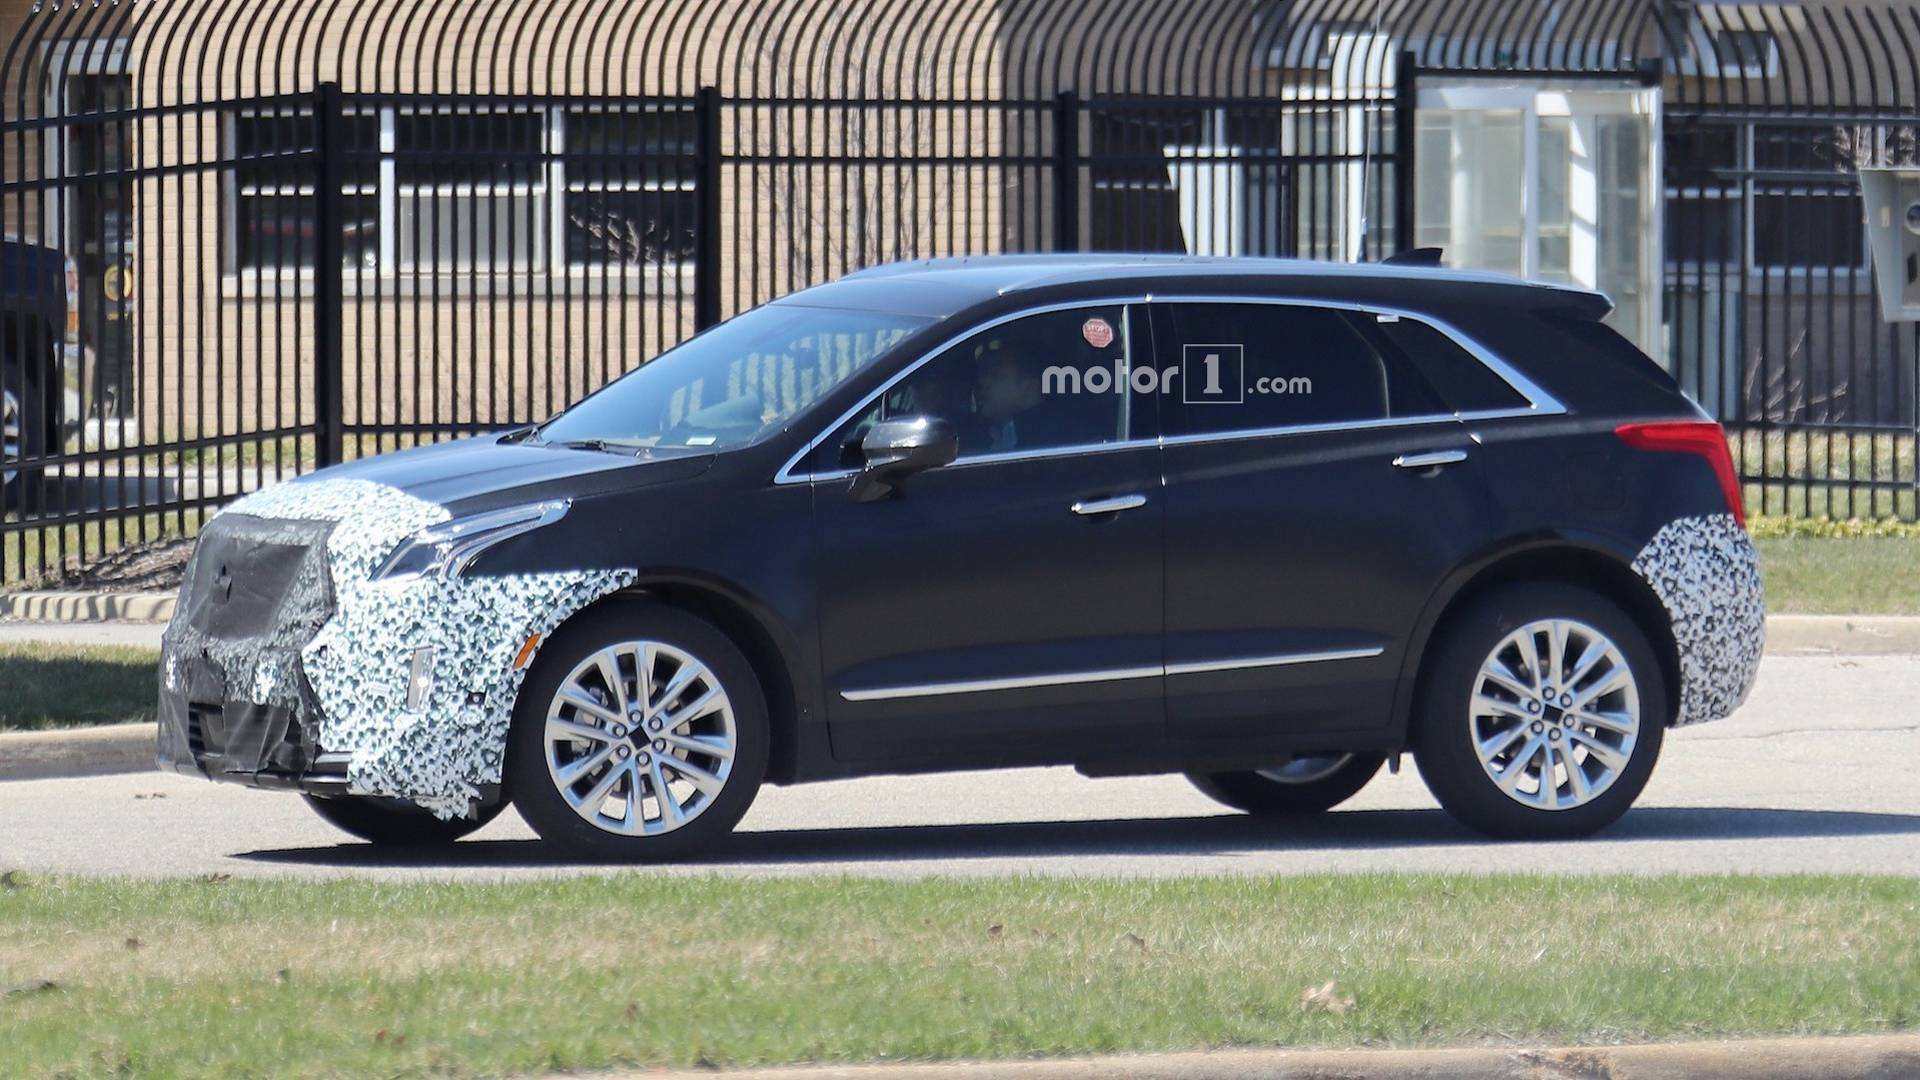 22 All New 2020 Spy Shots Cadillac Xt5 New Review